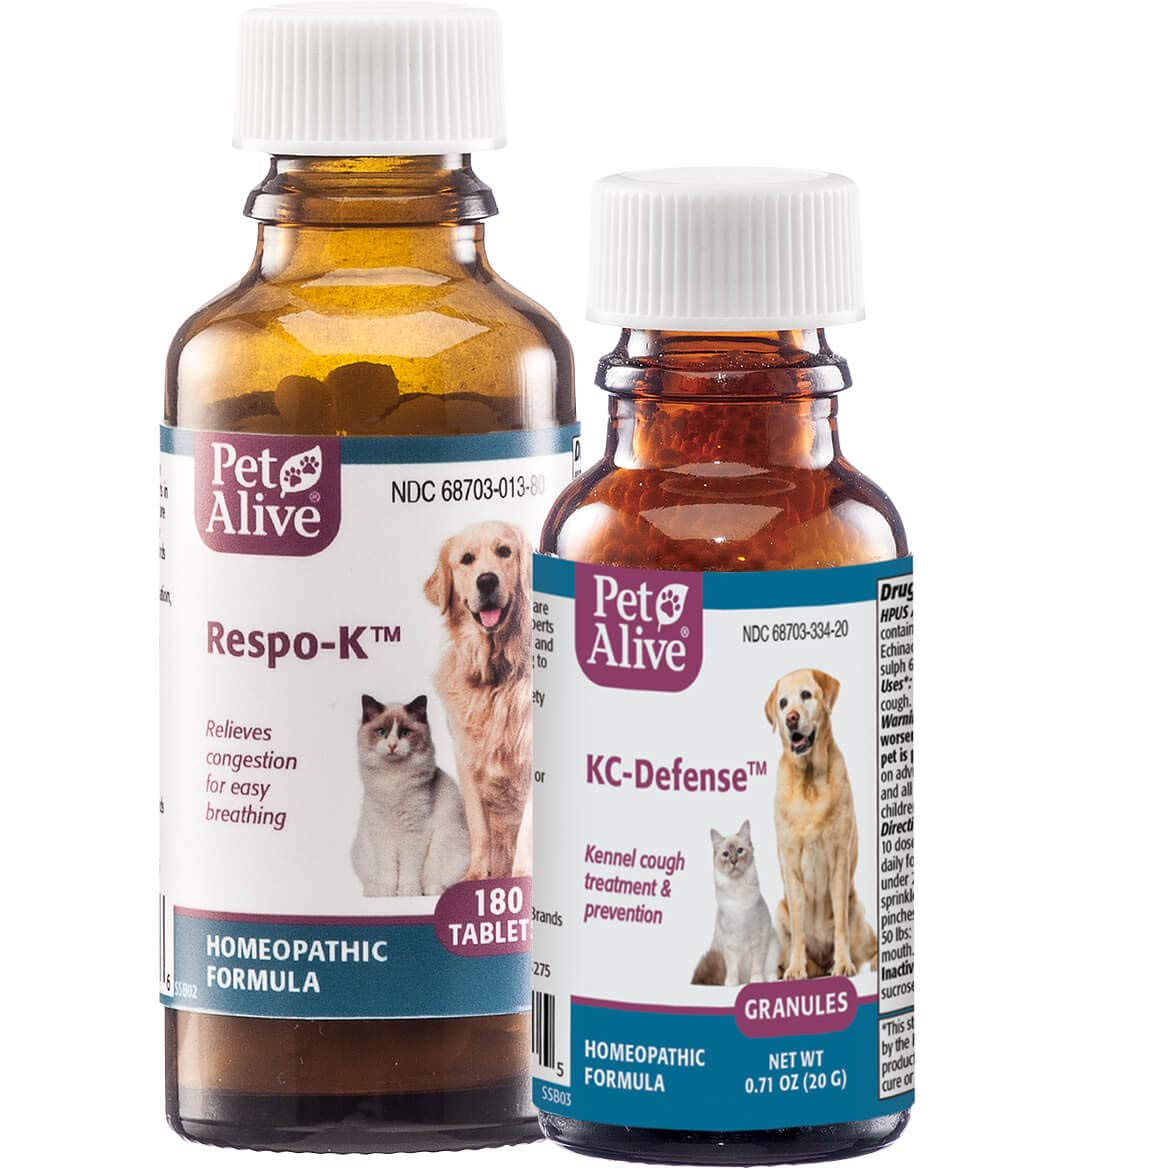 PetAlive Respo-K and KC-Defense ComboPack by PetAlive